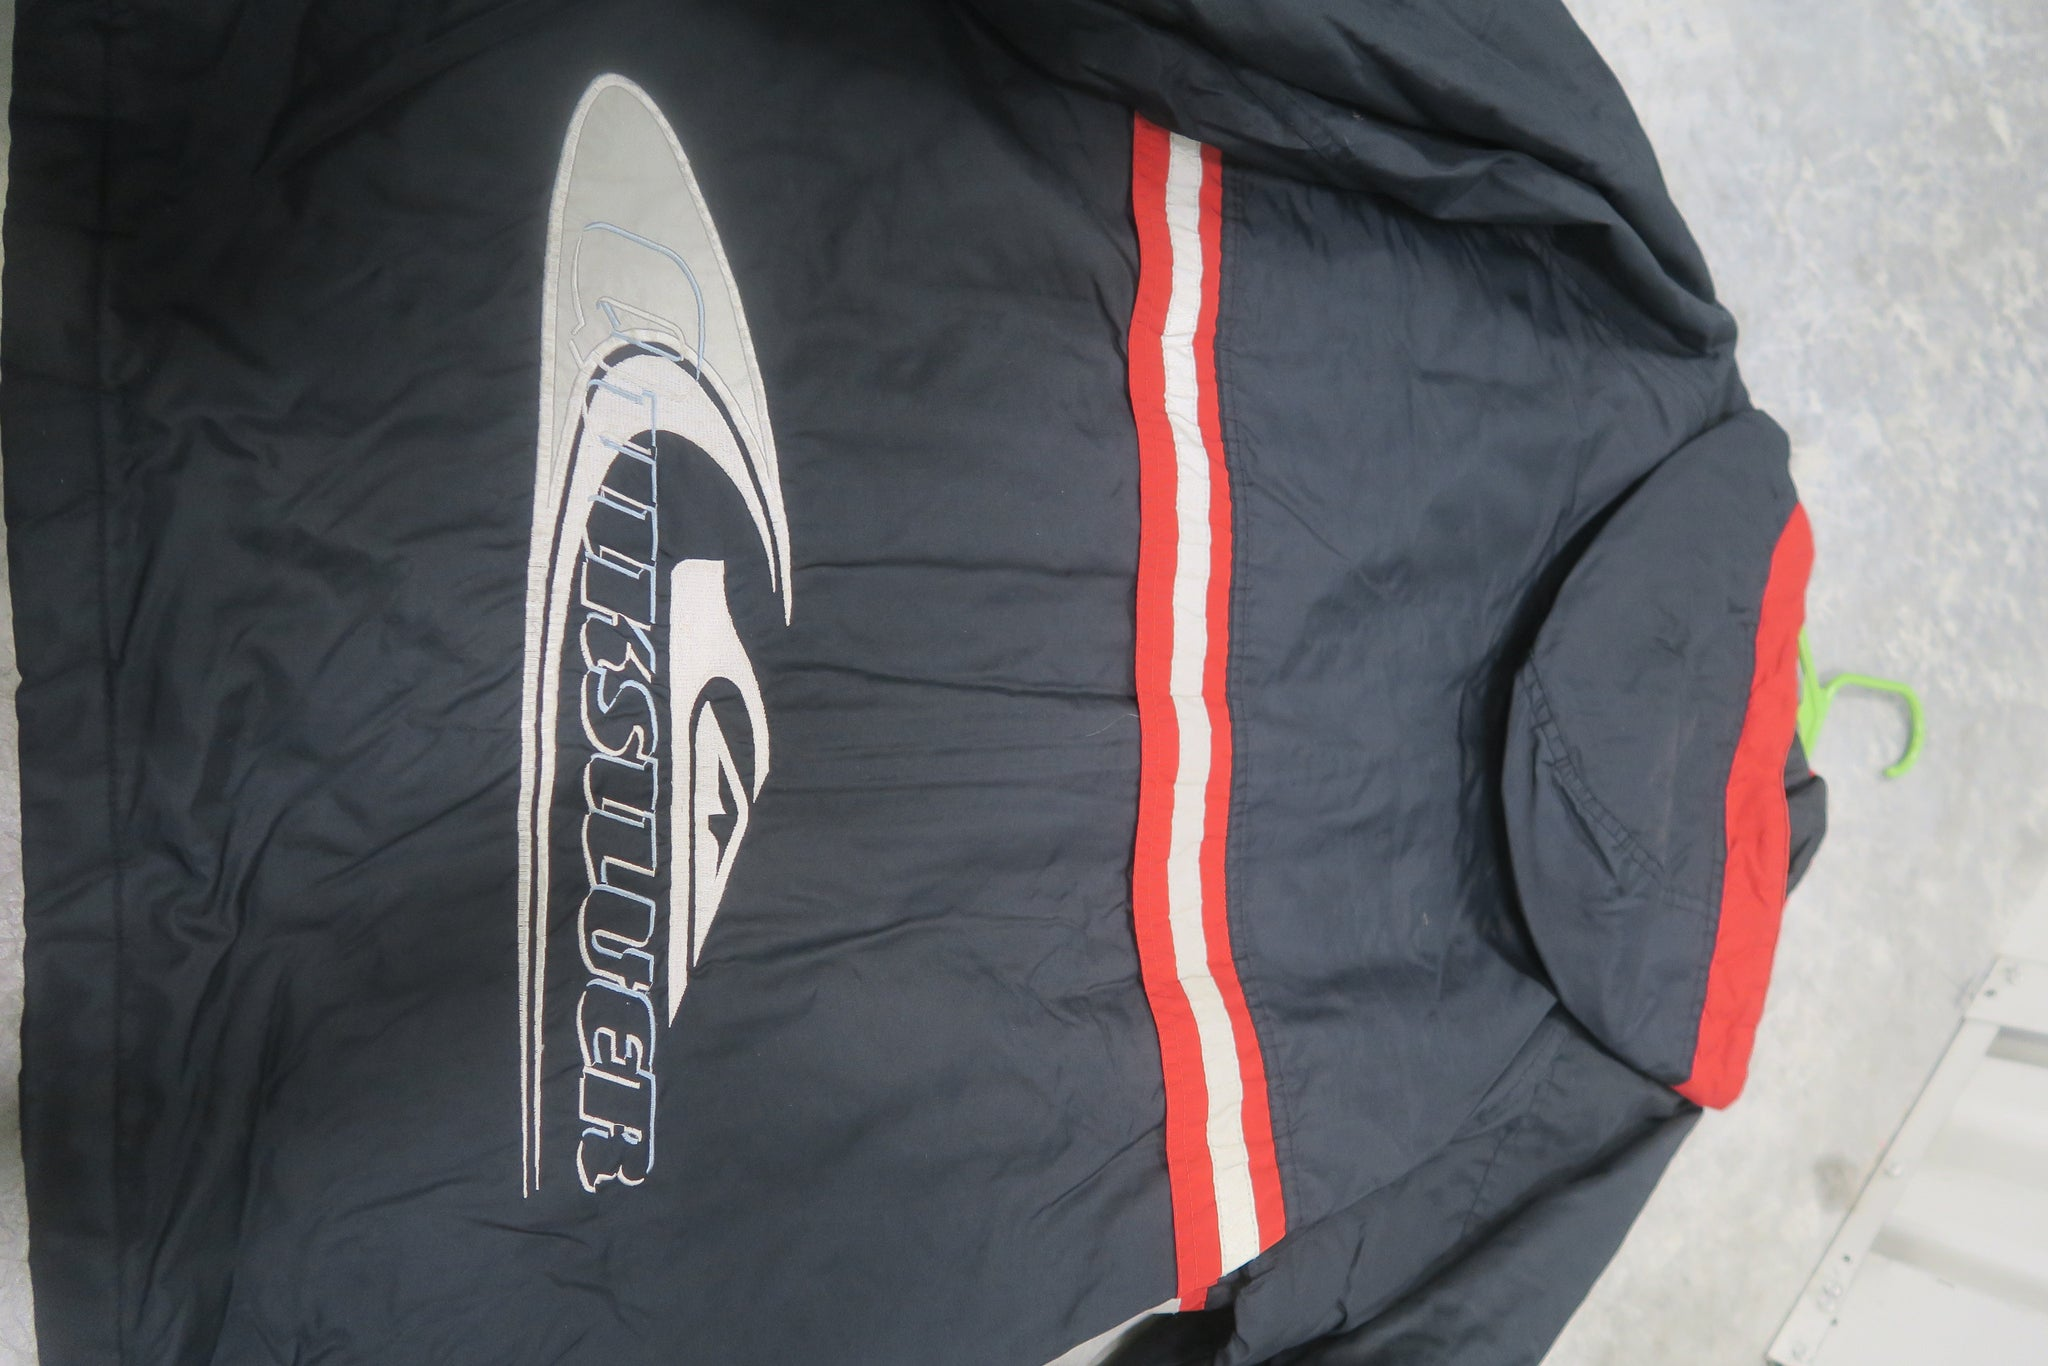 Quicksilver jacket